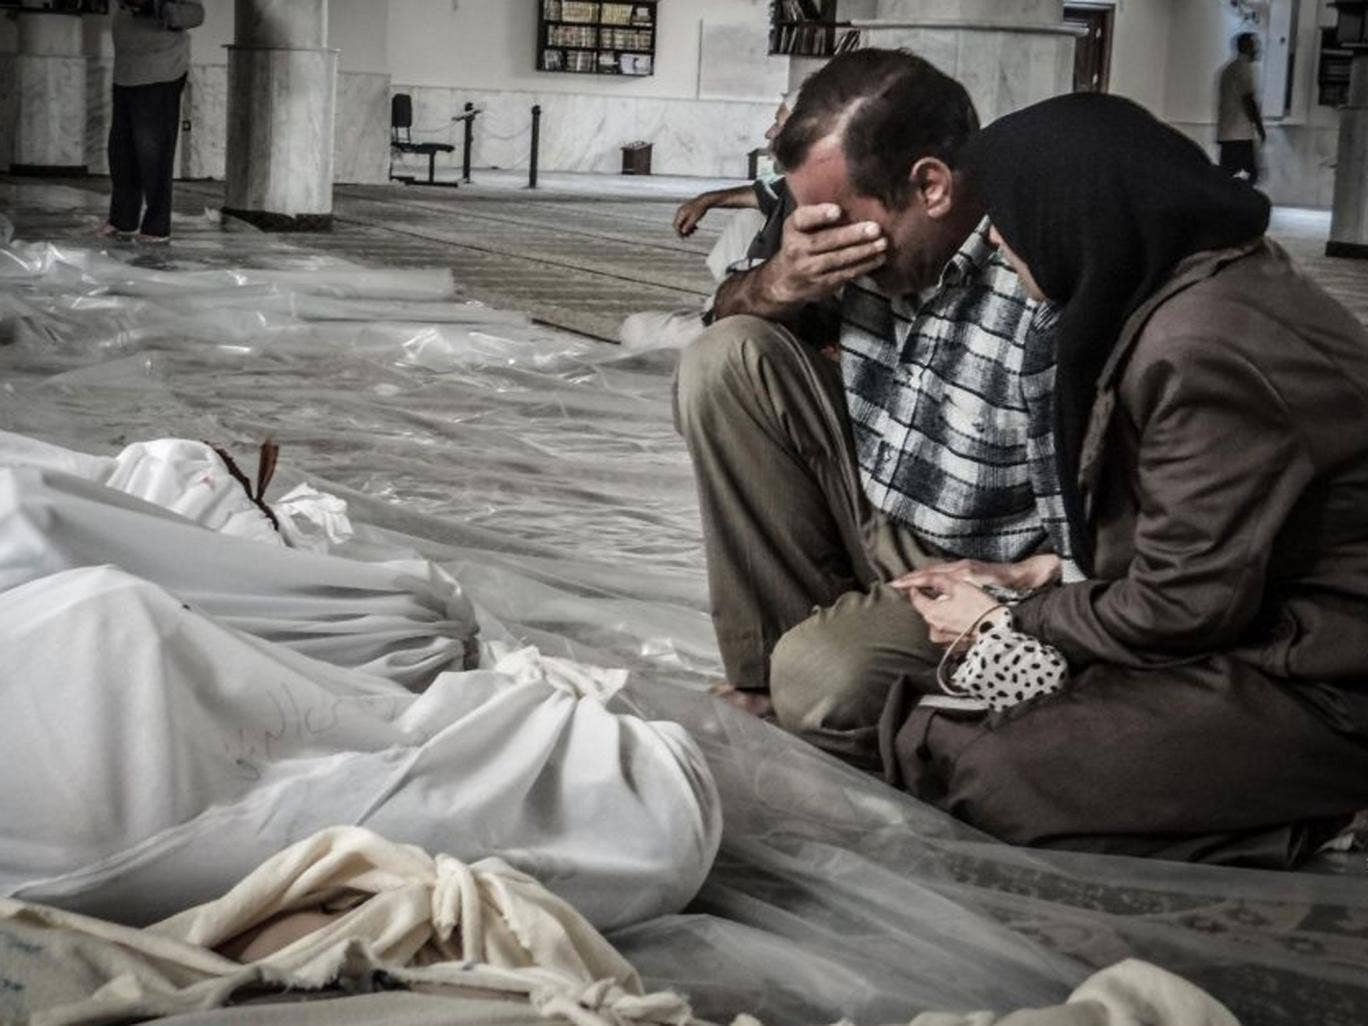 Victims: Parents grieve for their child, gassed in Ghouta